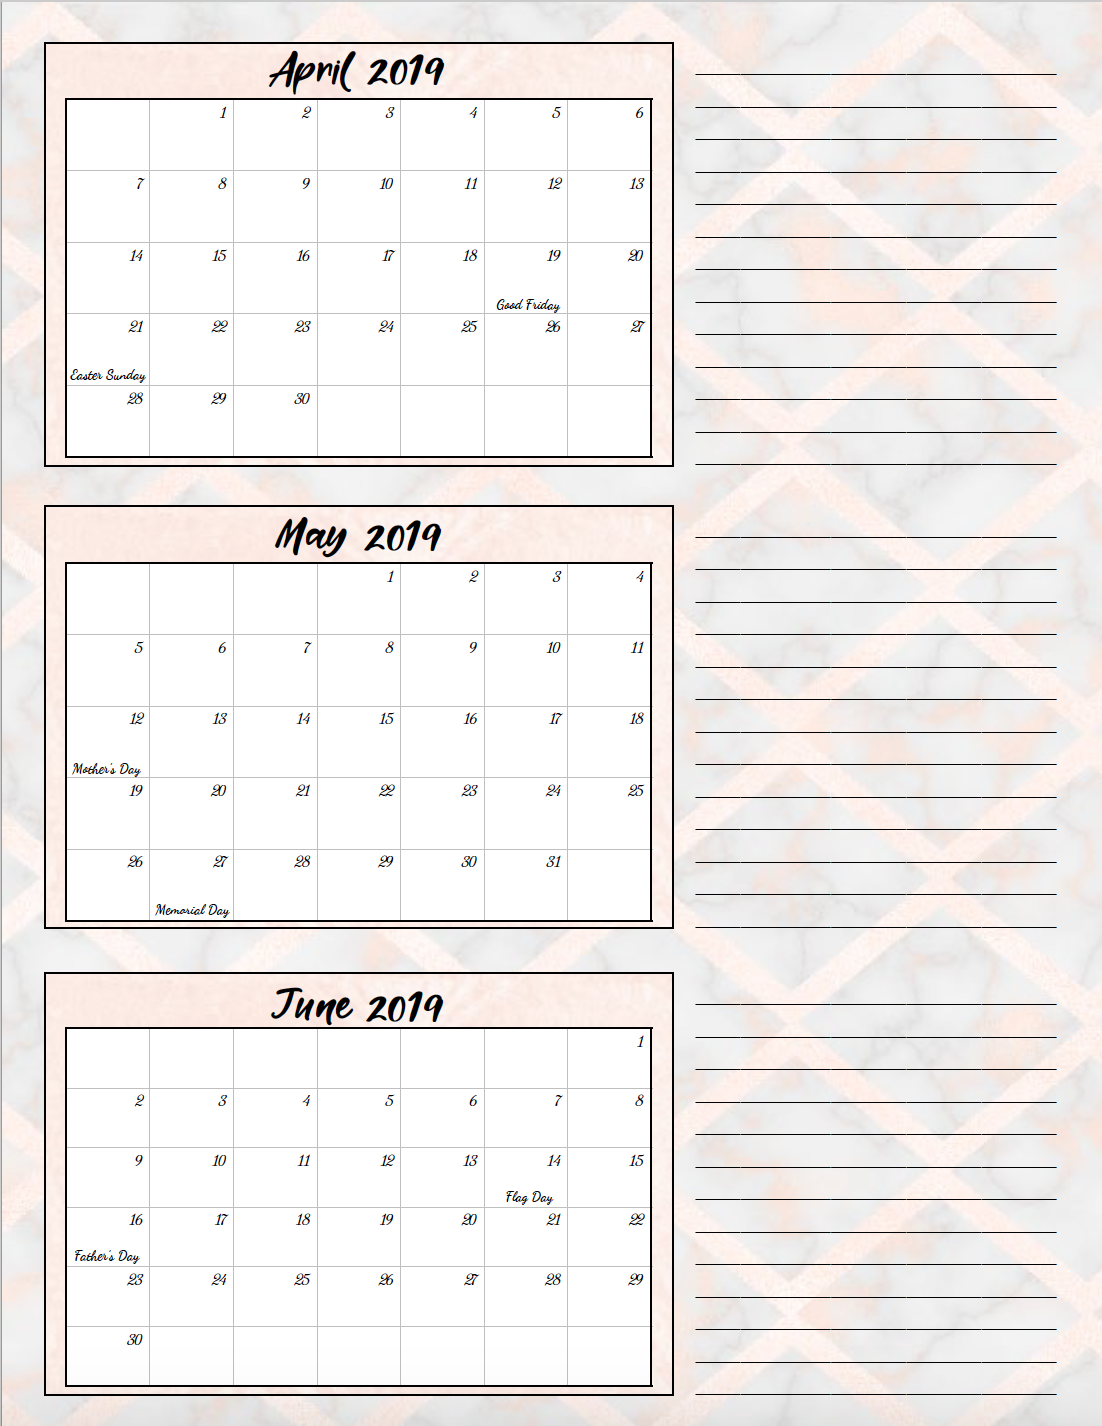 Quarterly Calendar Template 2019 Free Printable 2019 Quarterly Calendars with Holidays: 3 Designs